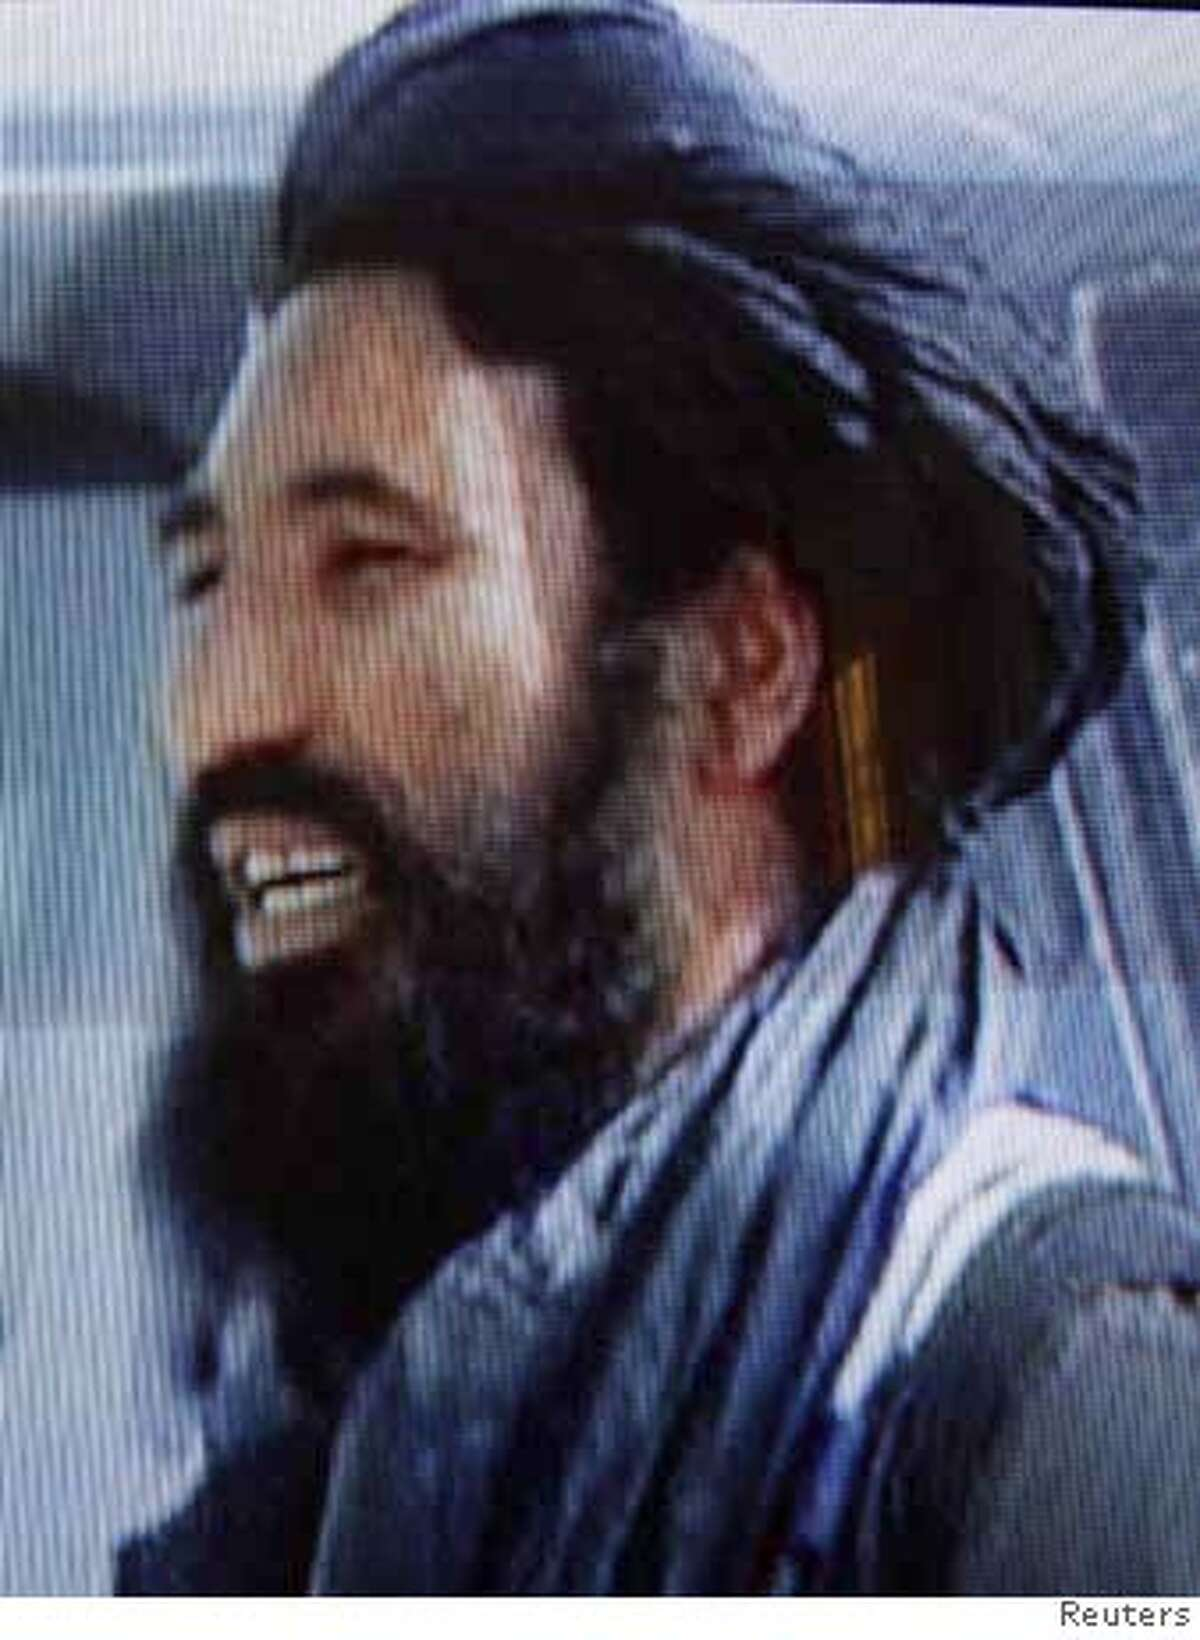 A photograph taken from television shows Mullah Mansour Dadullah in an undated video. Pakistani security forces wounded and captured Mansour Dadullah, a top Taliban commander, on Monday in a raid near the border with Afghanistan, intelligence officials said. Mullah Mansour took over as commander of Taliban forces in the southern Afghan province of Helmand after his brother, Mullah Dadullah, was killed by British forces in May. REUTERS/Handout (AFGHANISTAN). EDITORIAL USE ONLY. NOT FOR SALE FOR MARKETING OR ADVERTISING CAMPAIGNS. 0